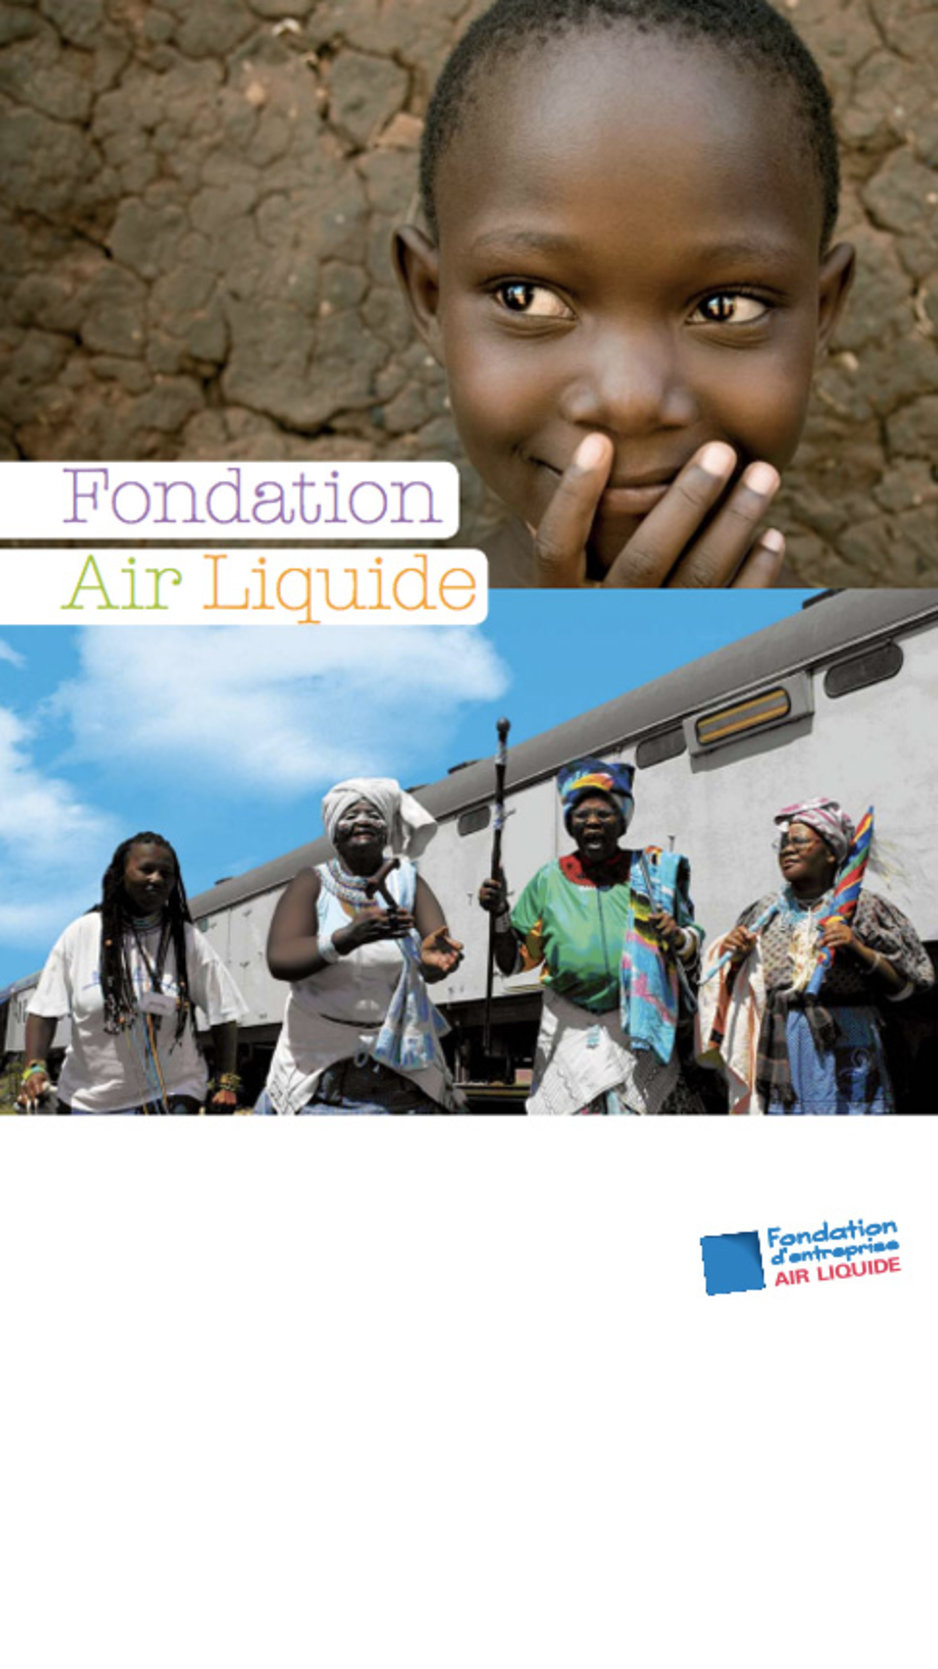 La brochure de la Fondation Air Liquide